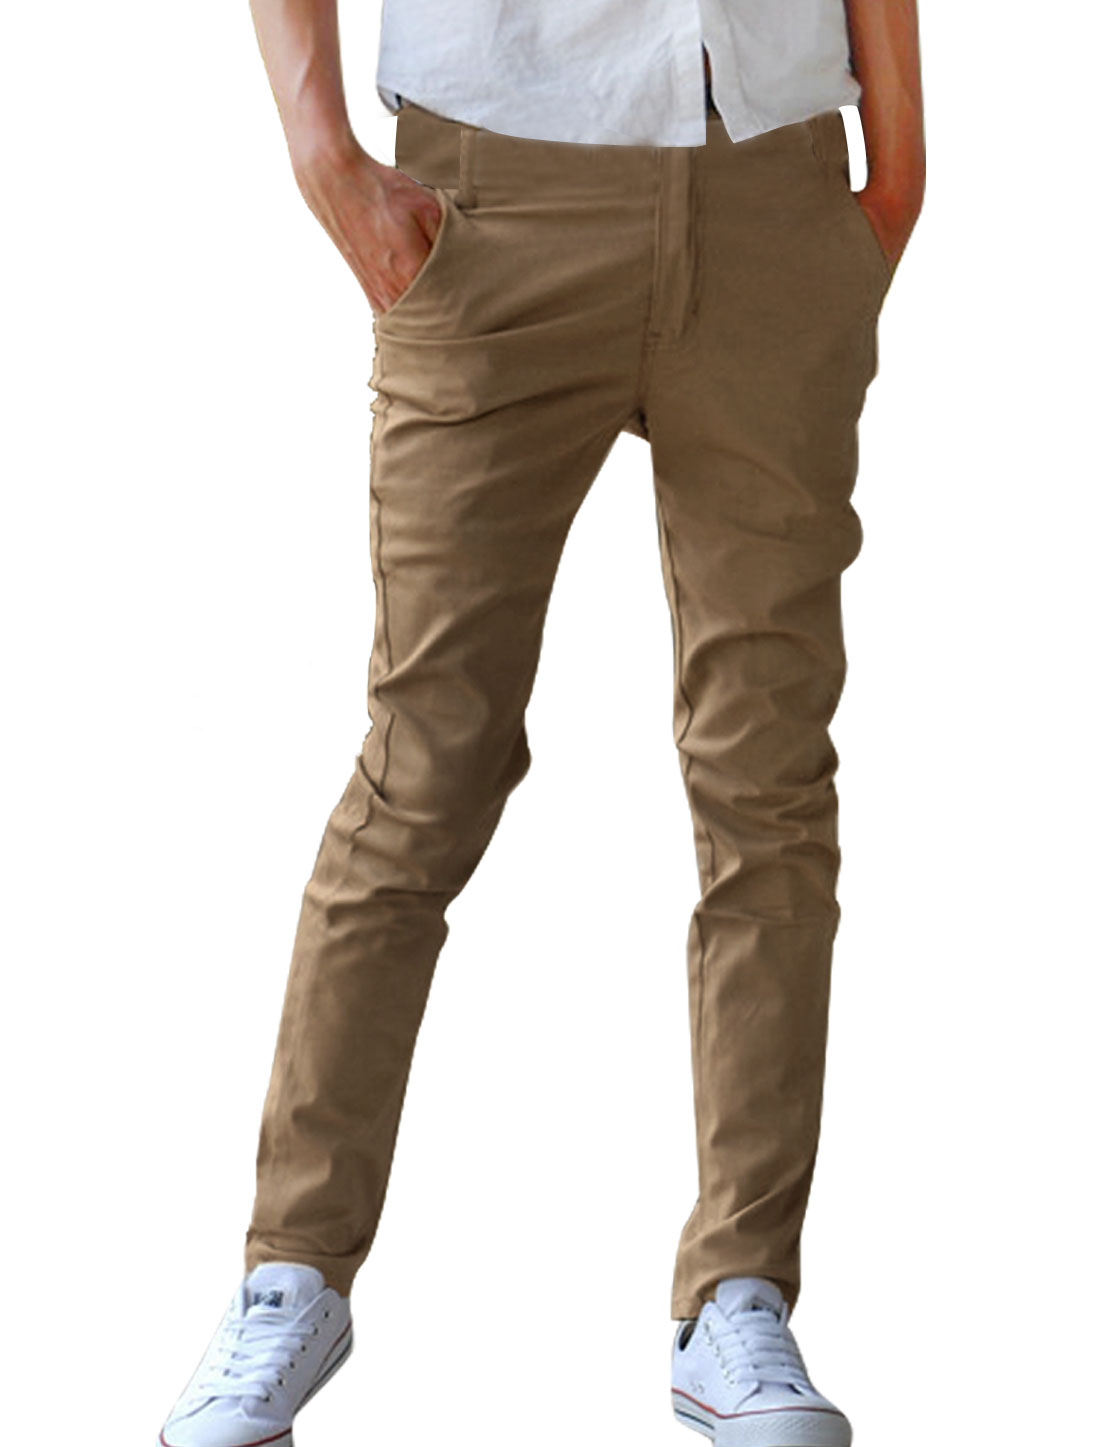 Men Medium Khaki One Button Slant Pockets Front Flat Casual Pants W34